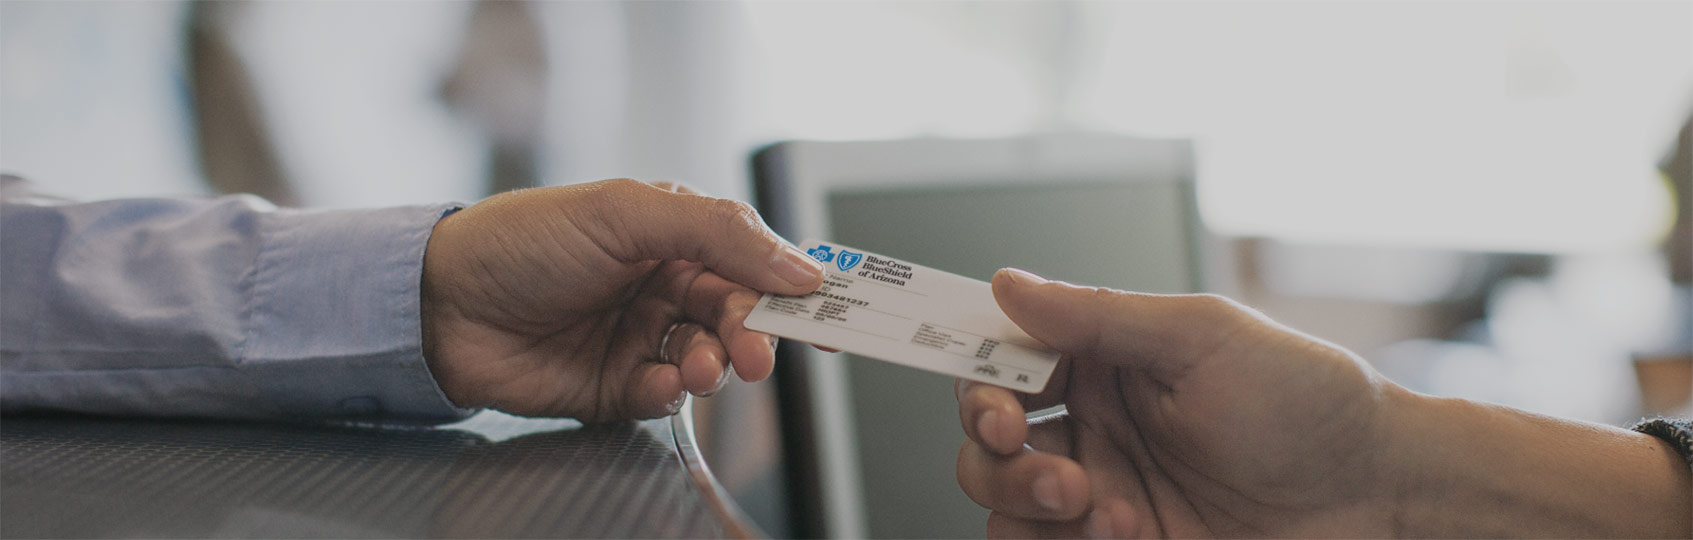 Agent giving a membership card to a member